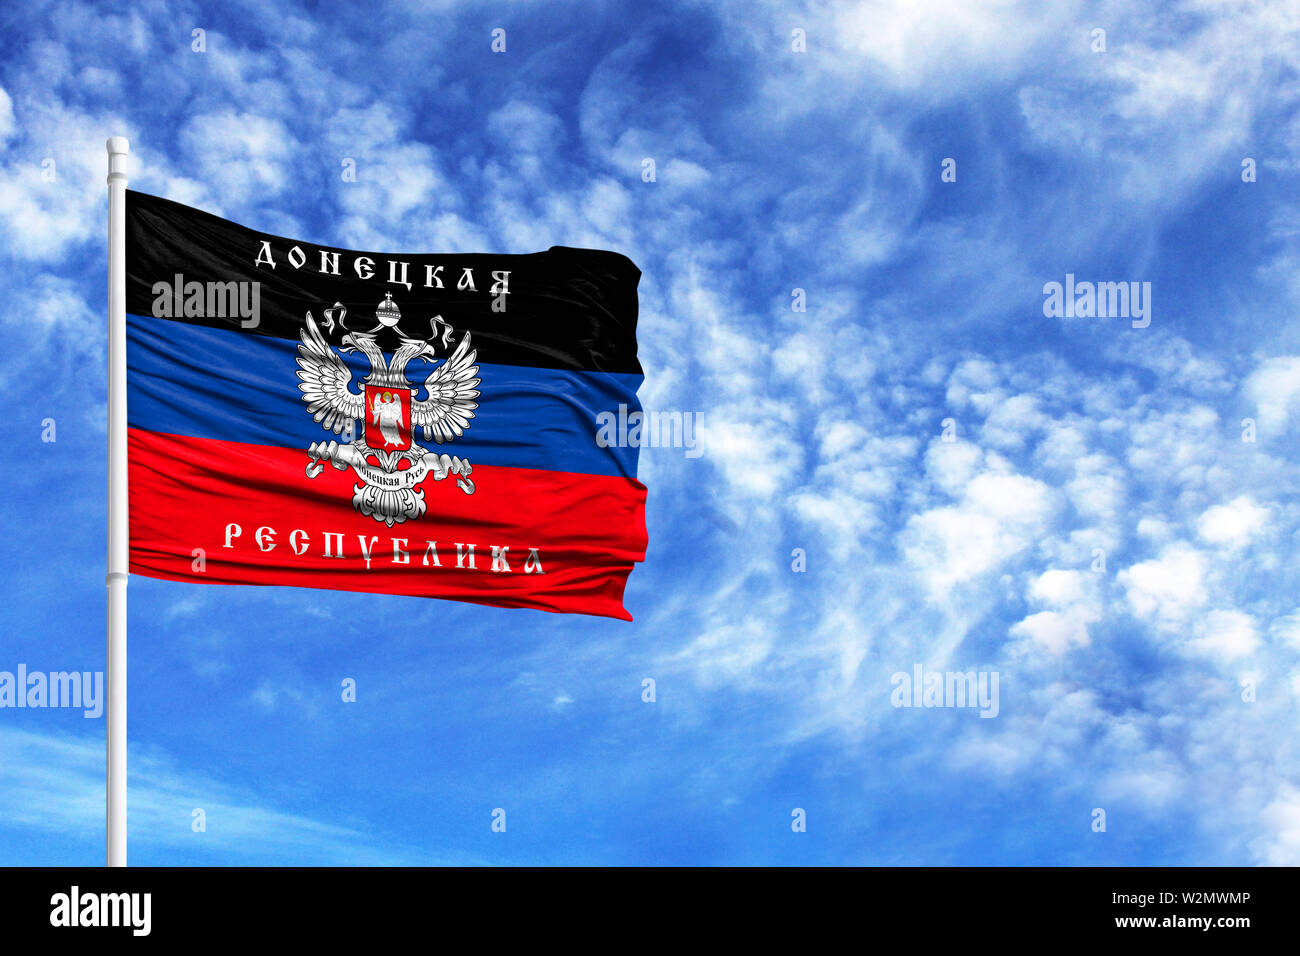 National flag of the Donetsk People's Republic on a flagpole in front of blue sky - Stock Image